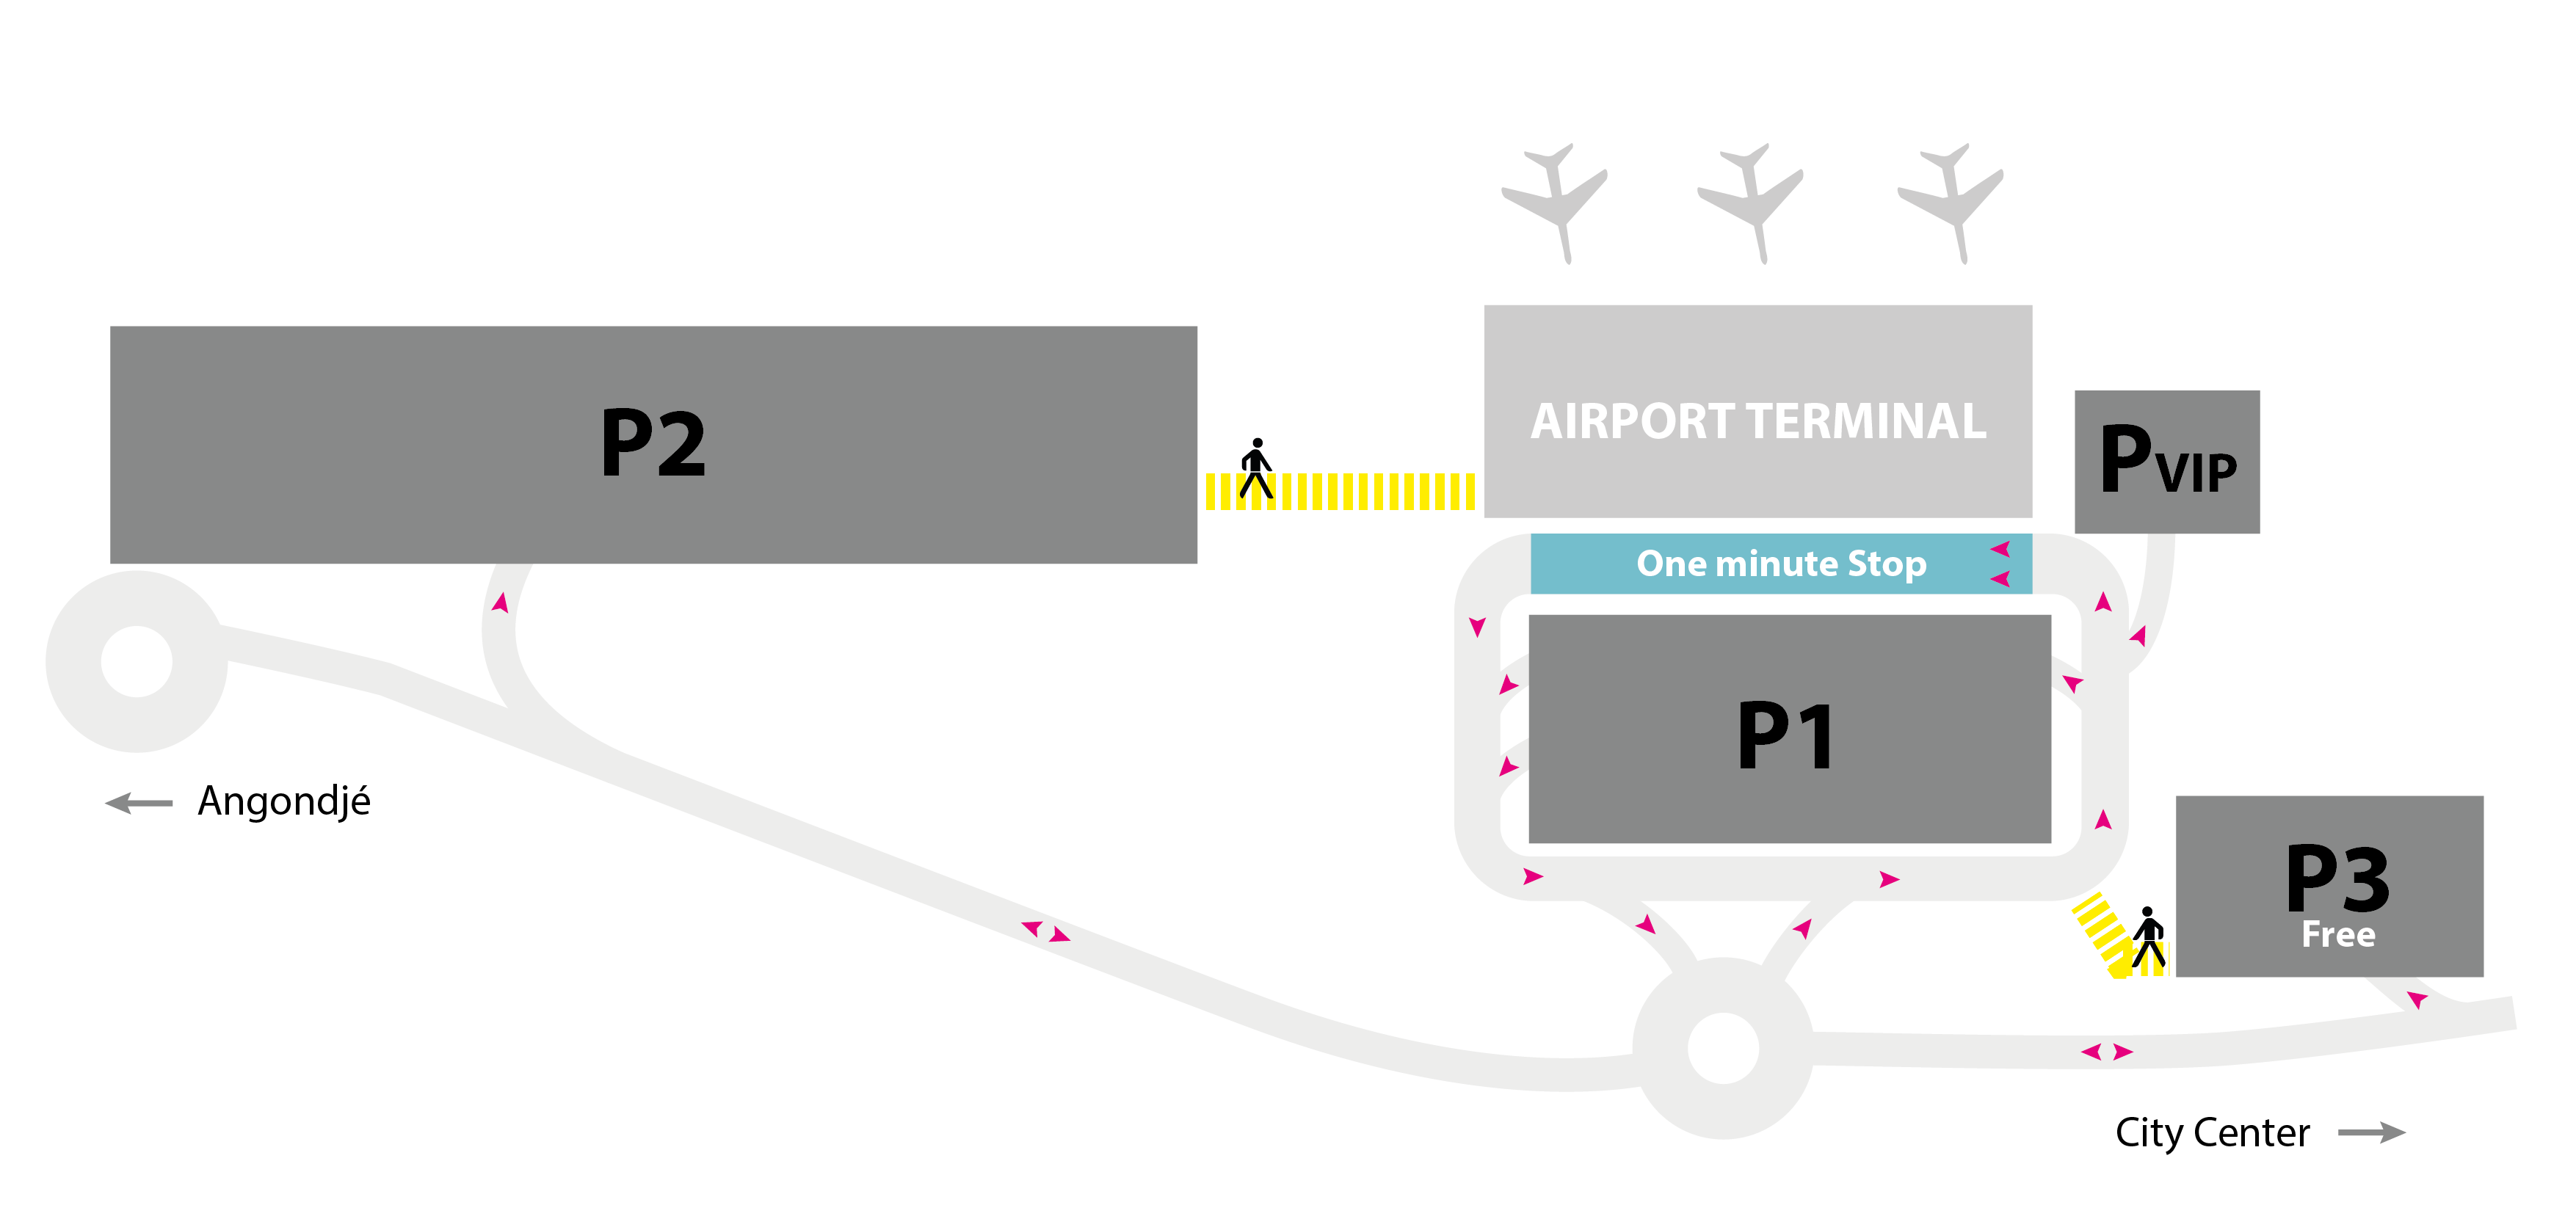 Airport_parking_plan_engl